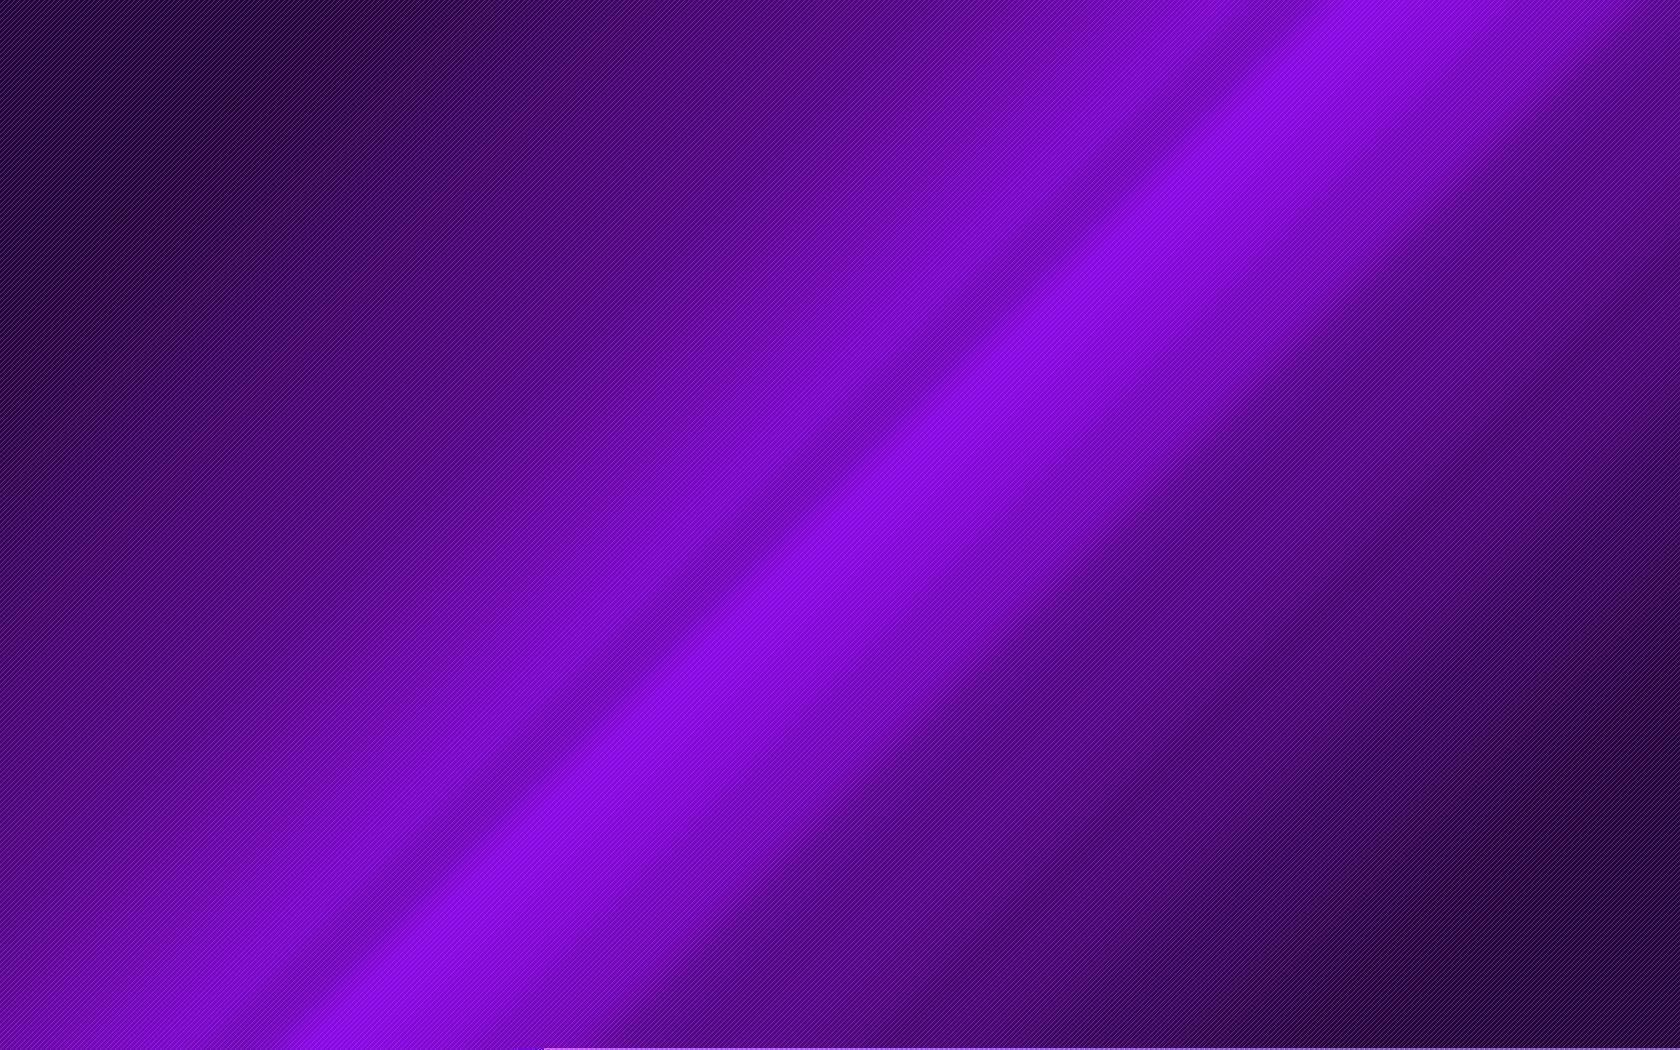 Full HD Wallpapers + Backgrounds, Violet